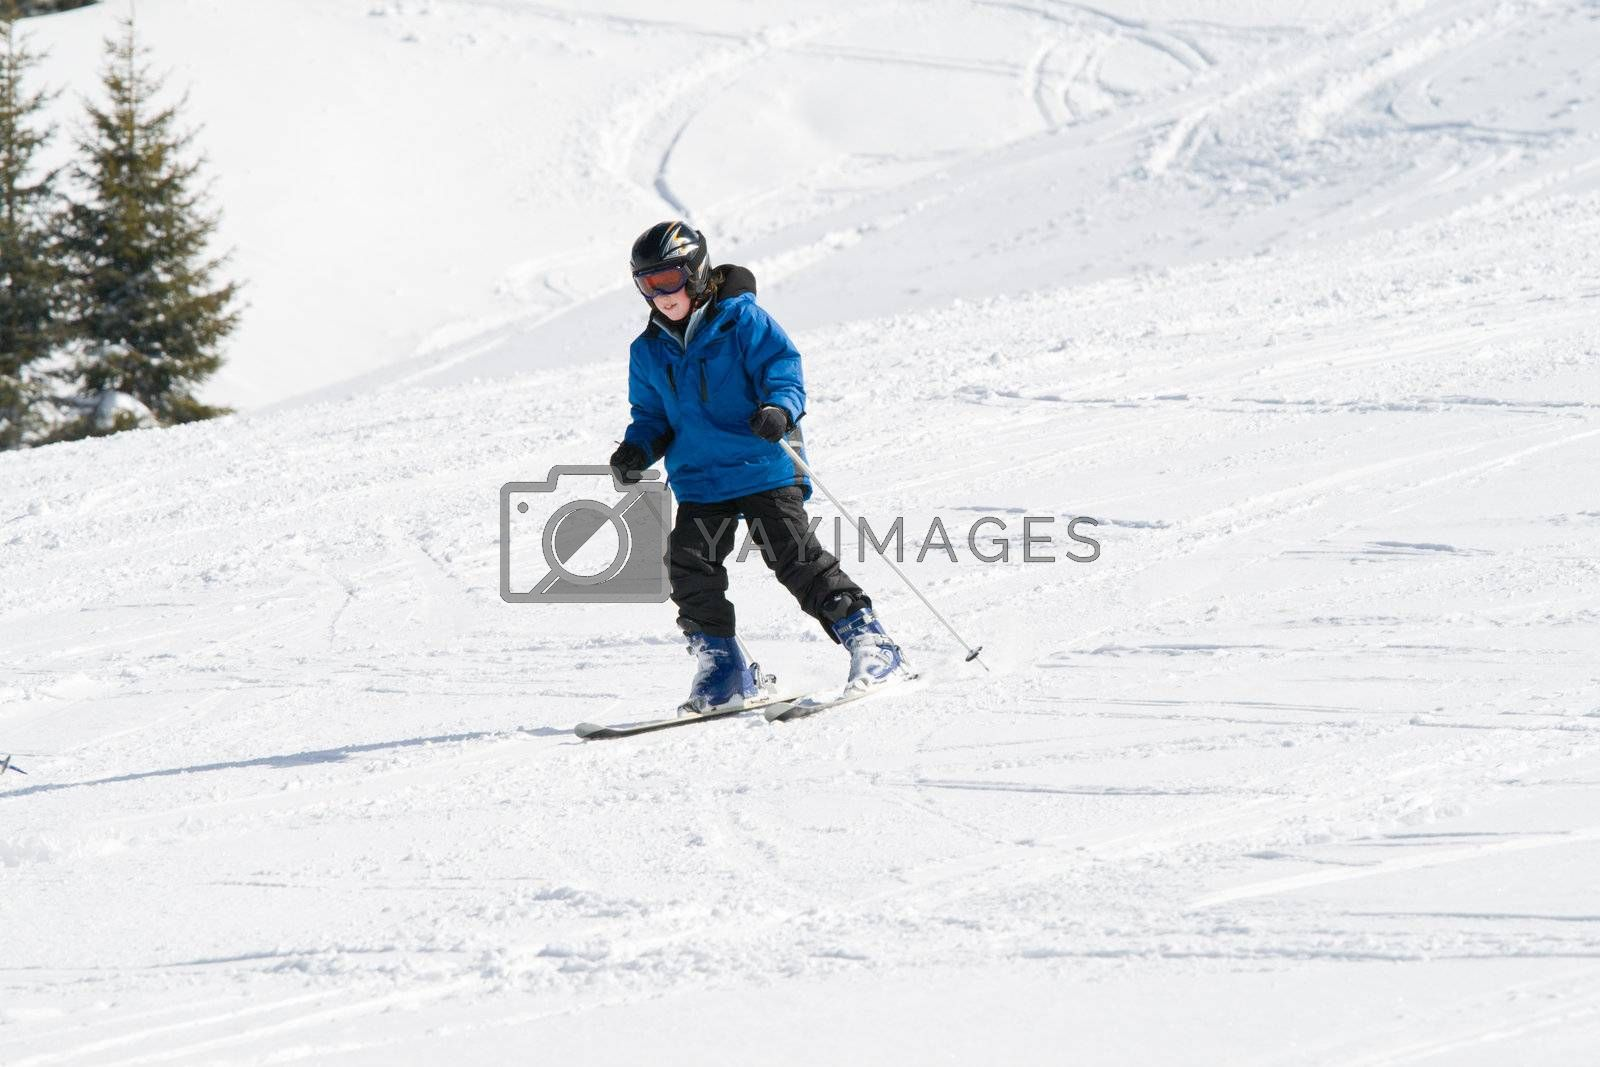 Boy skiing down a snowy slope on a sunny day